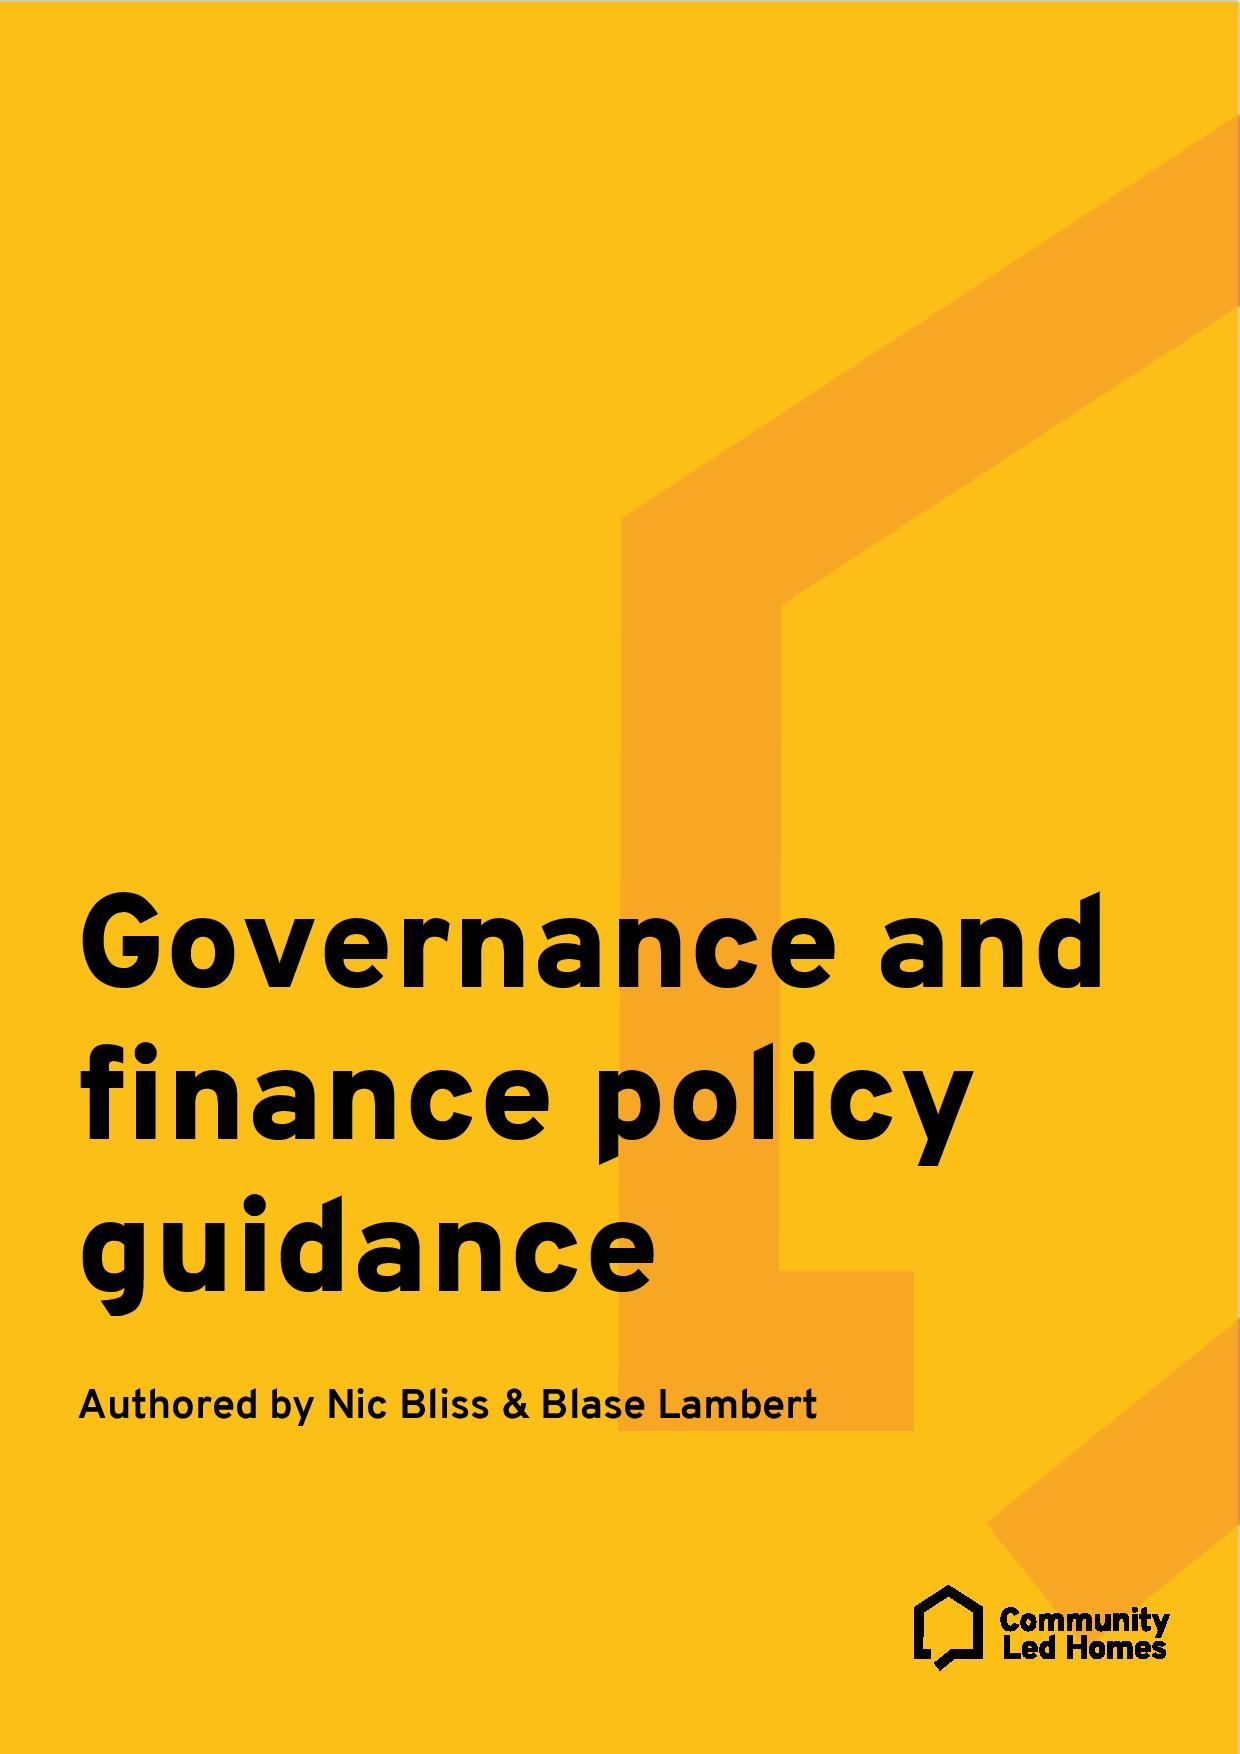 CLH governance-and-finance-policy-guidance